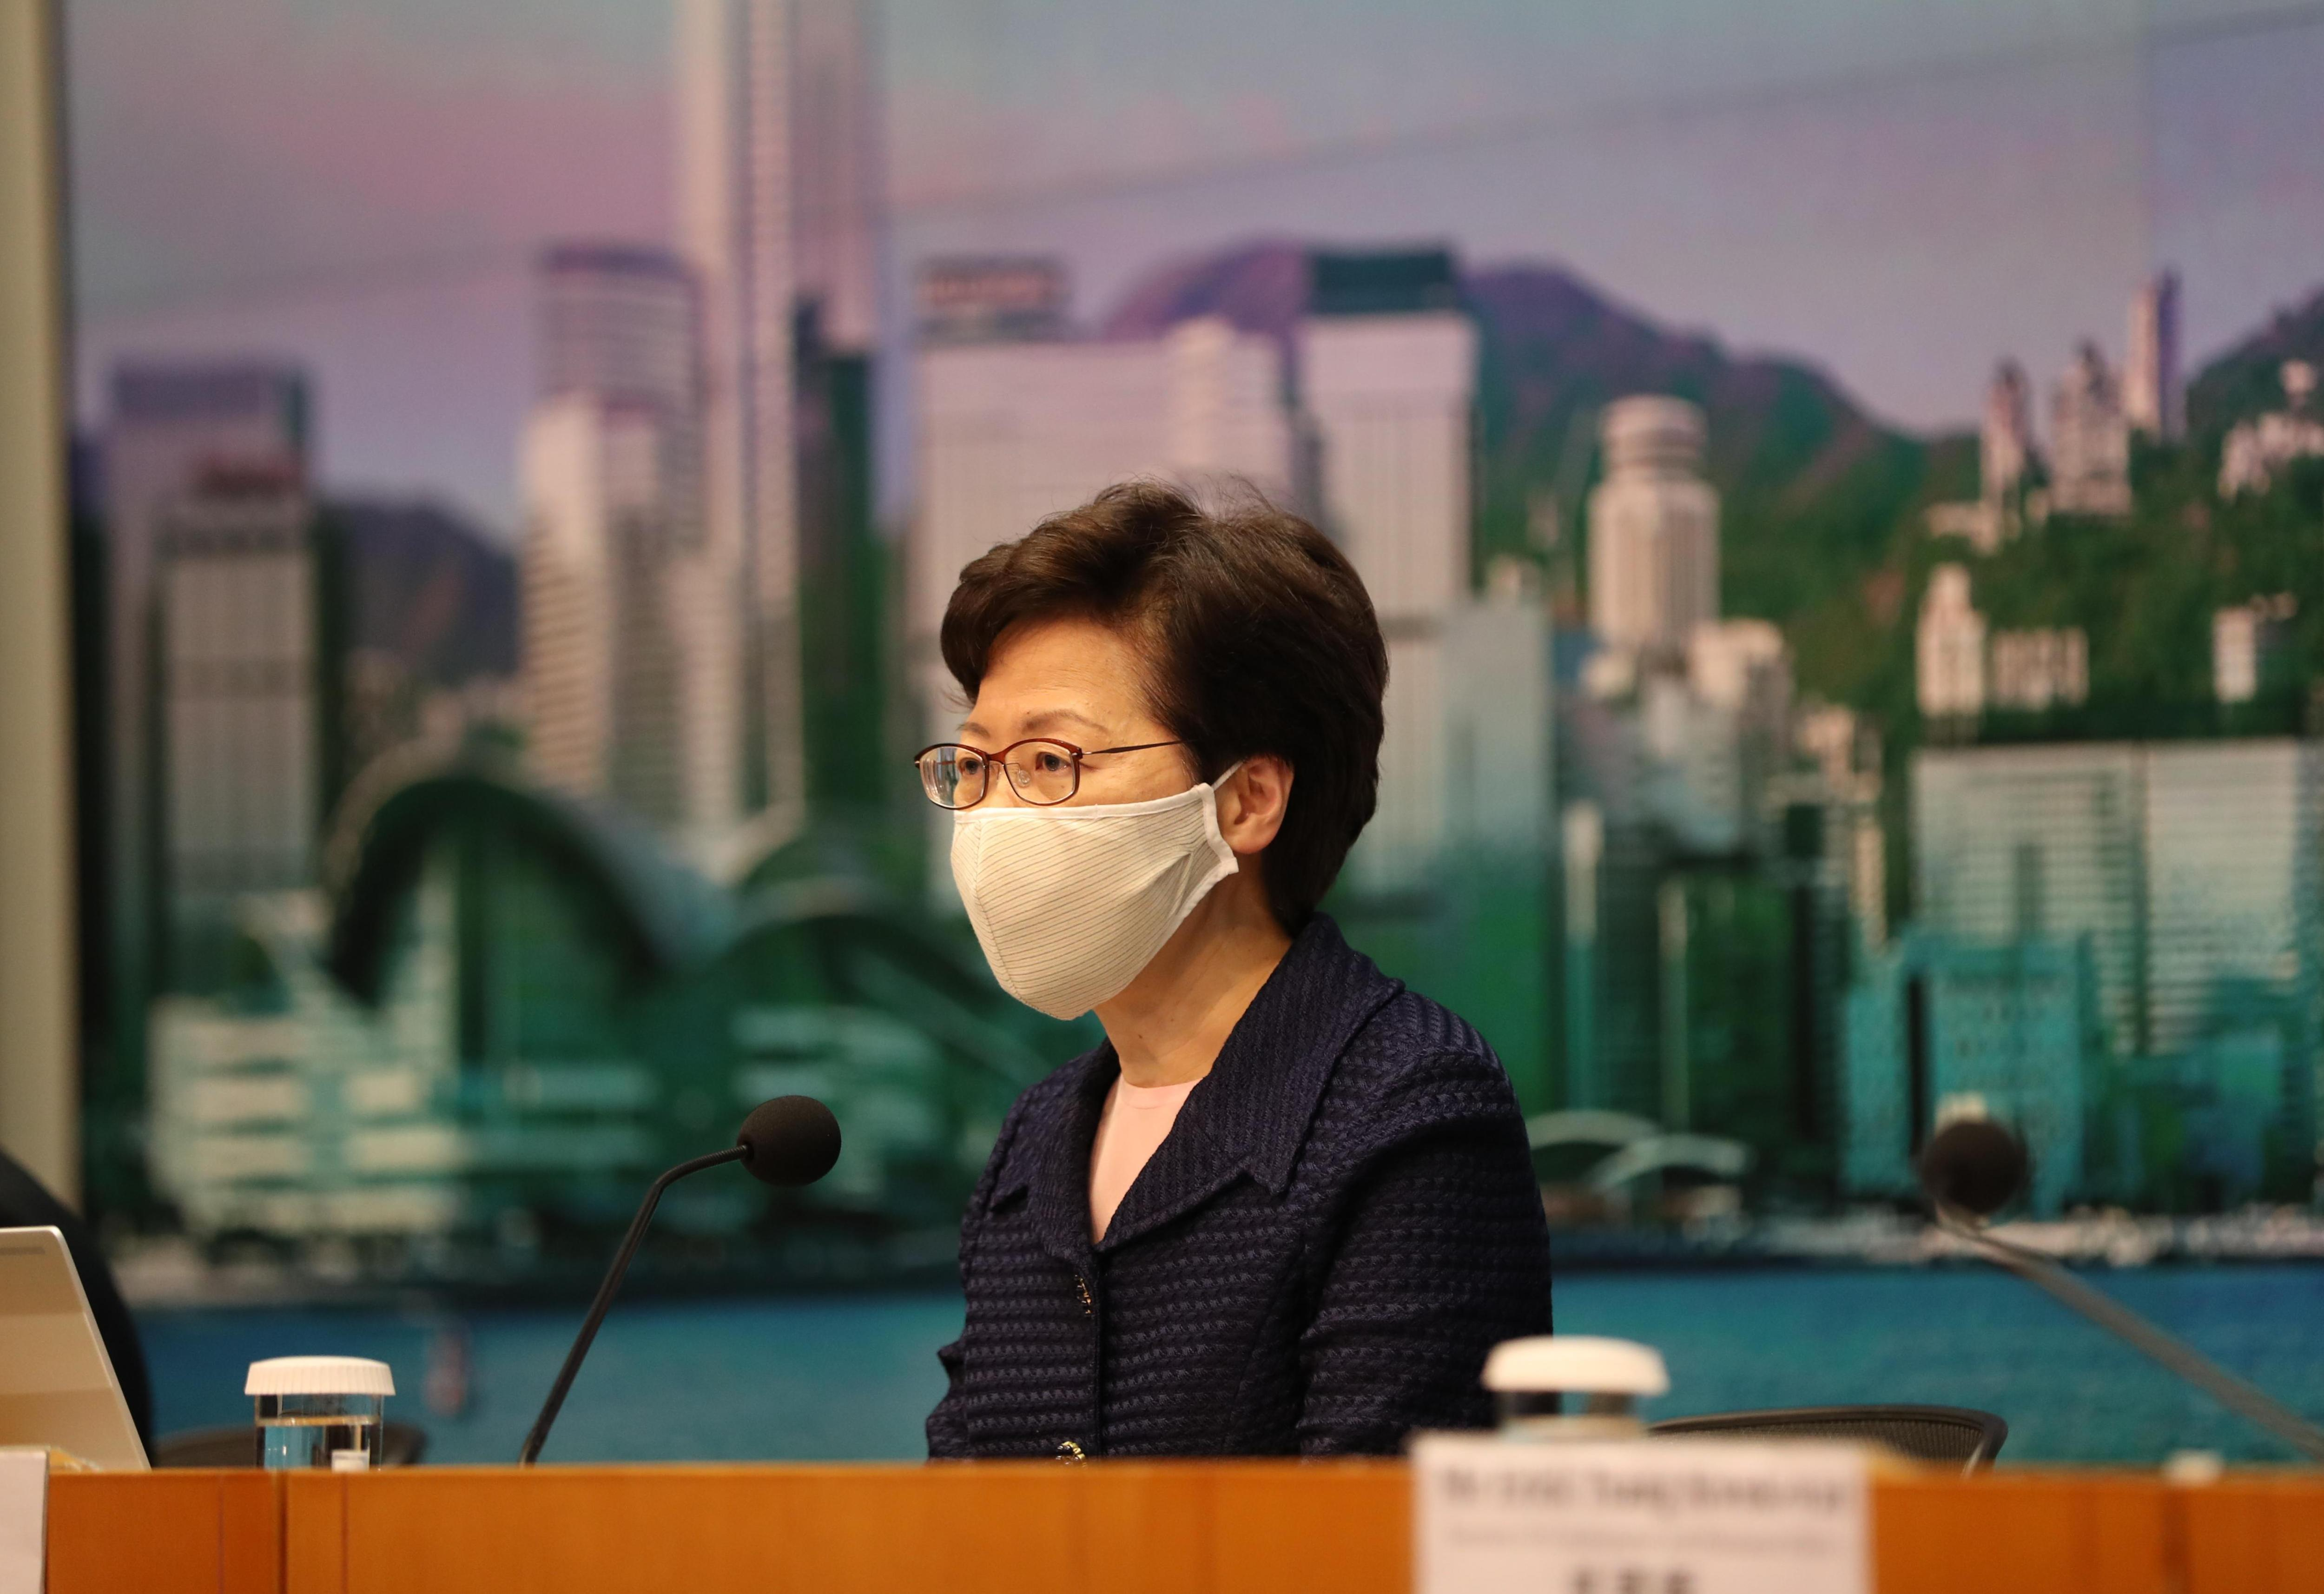 U.S. sanctions Hong Kong officials, including government leader Carrie Lam